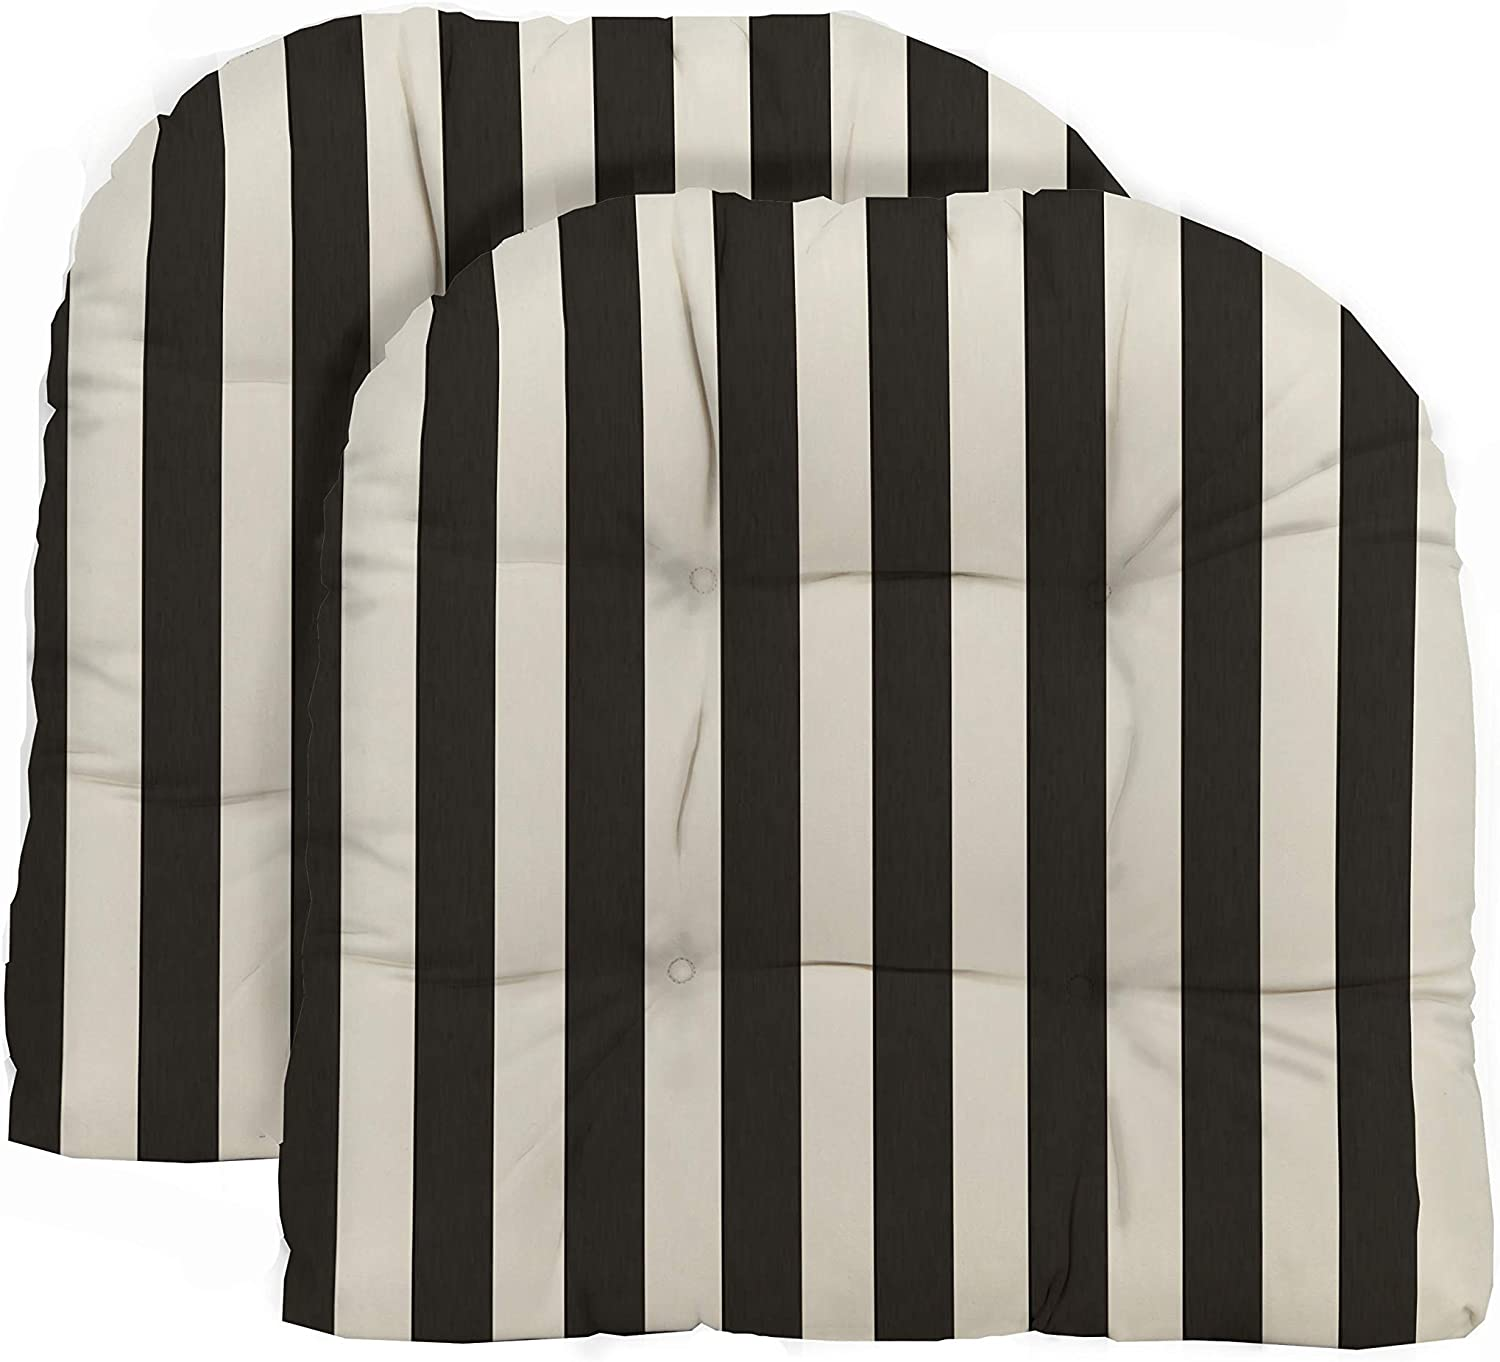 RSH Décor Decorative Indoor Outdoor Tufted Adirondack Wicker Patio U-Shape Chair Seat Cushion Chair Pad Replacement Choose Size & Color (2 - Wicker Chair Cushion, Black & White Stripe)